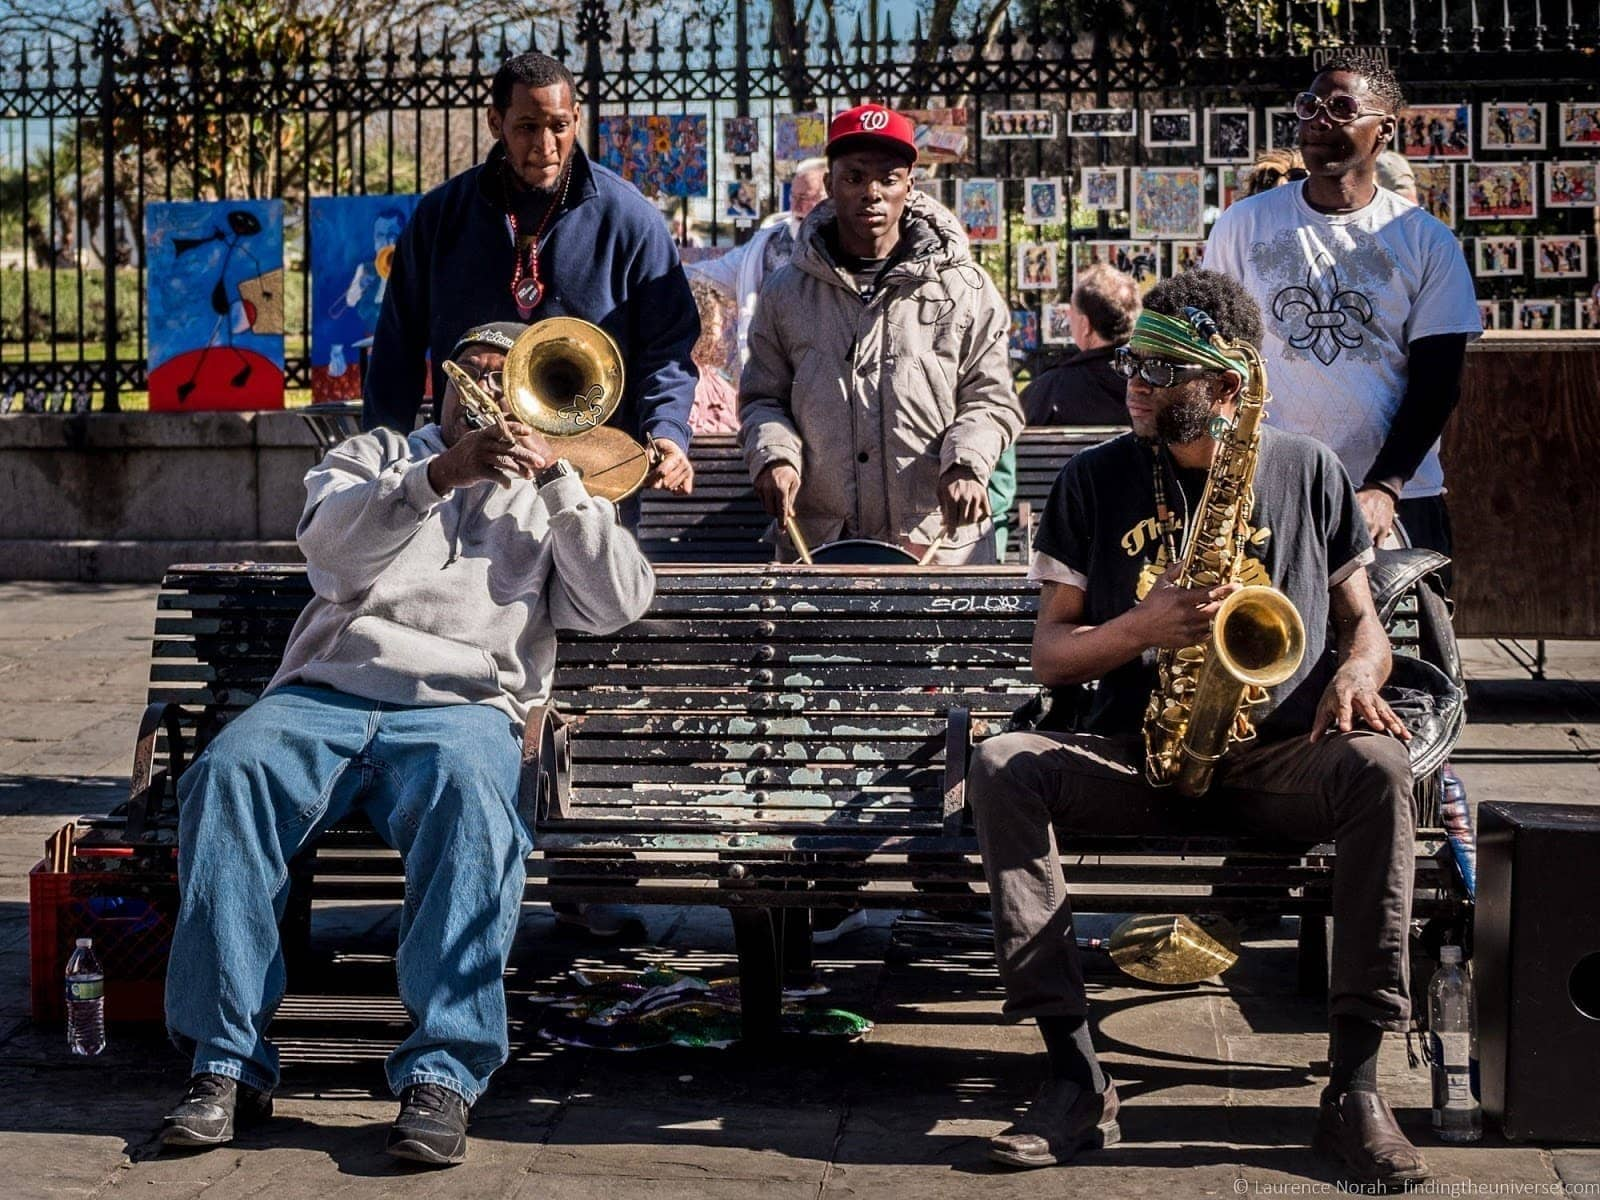 Music performers New Orleans